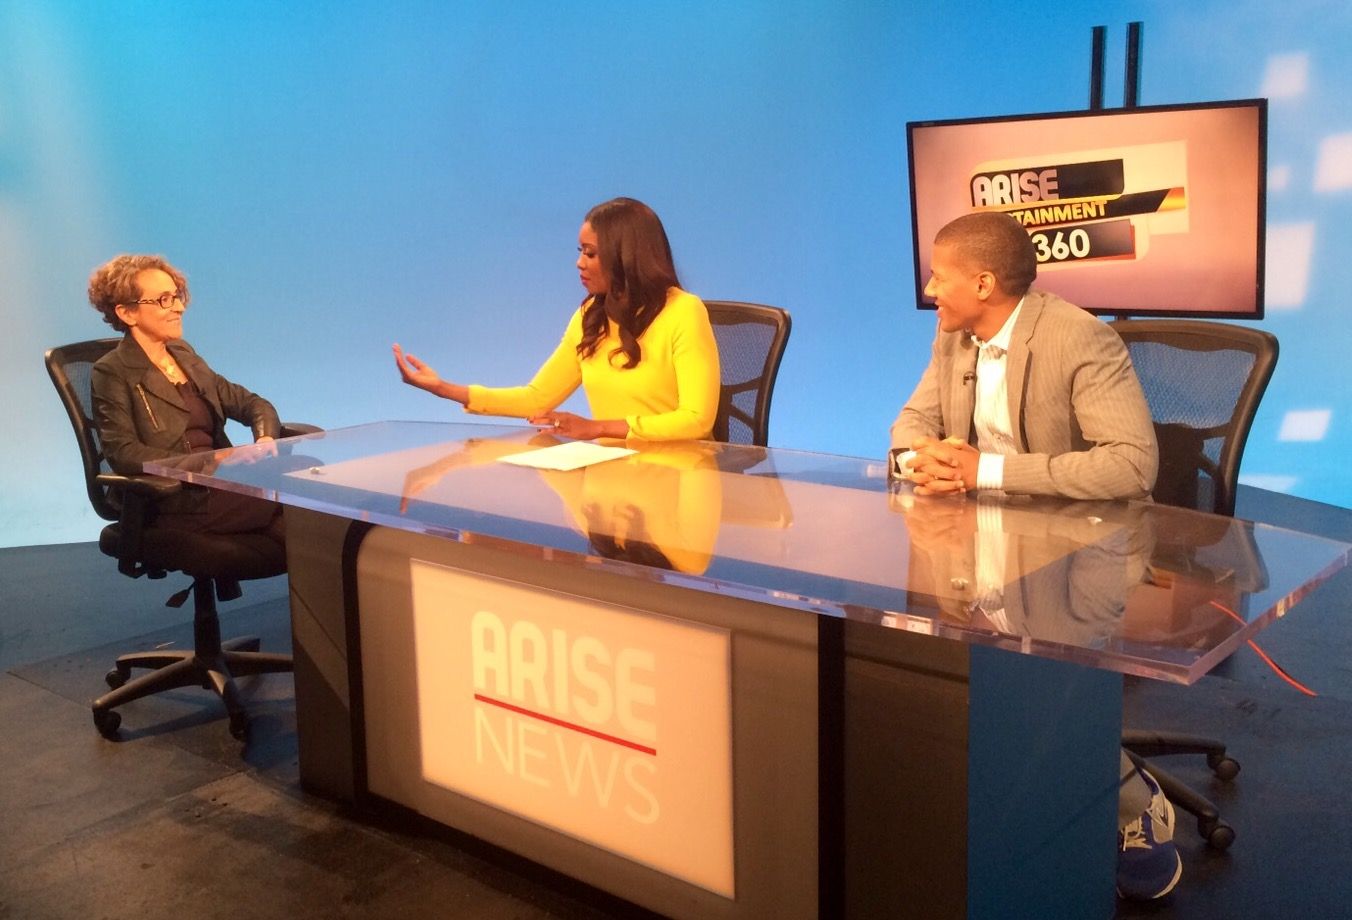 IBE Founder Tatiana J. Whytelord Interviewed on Arise Entertainment 360